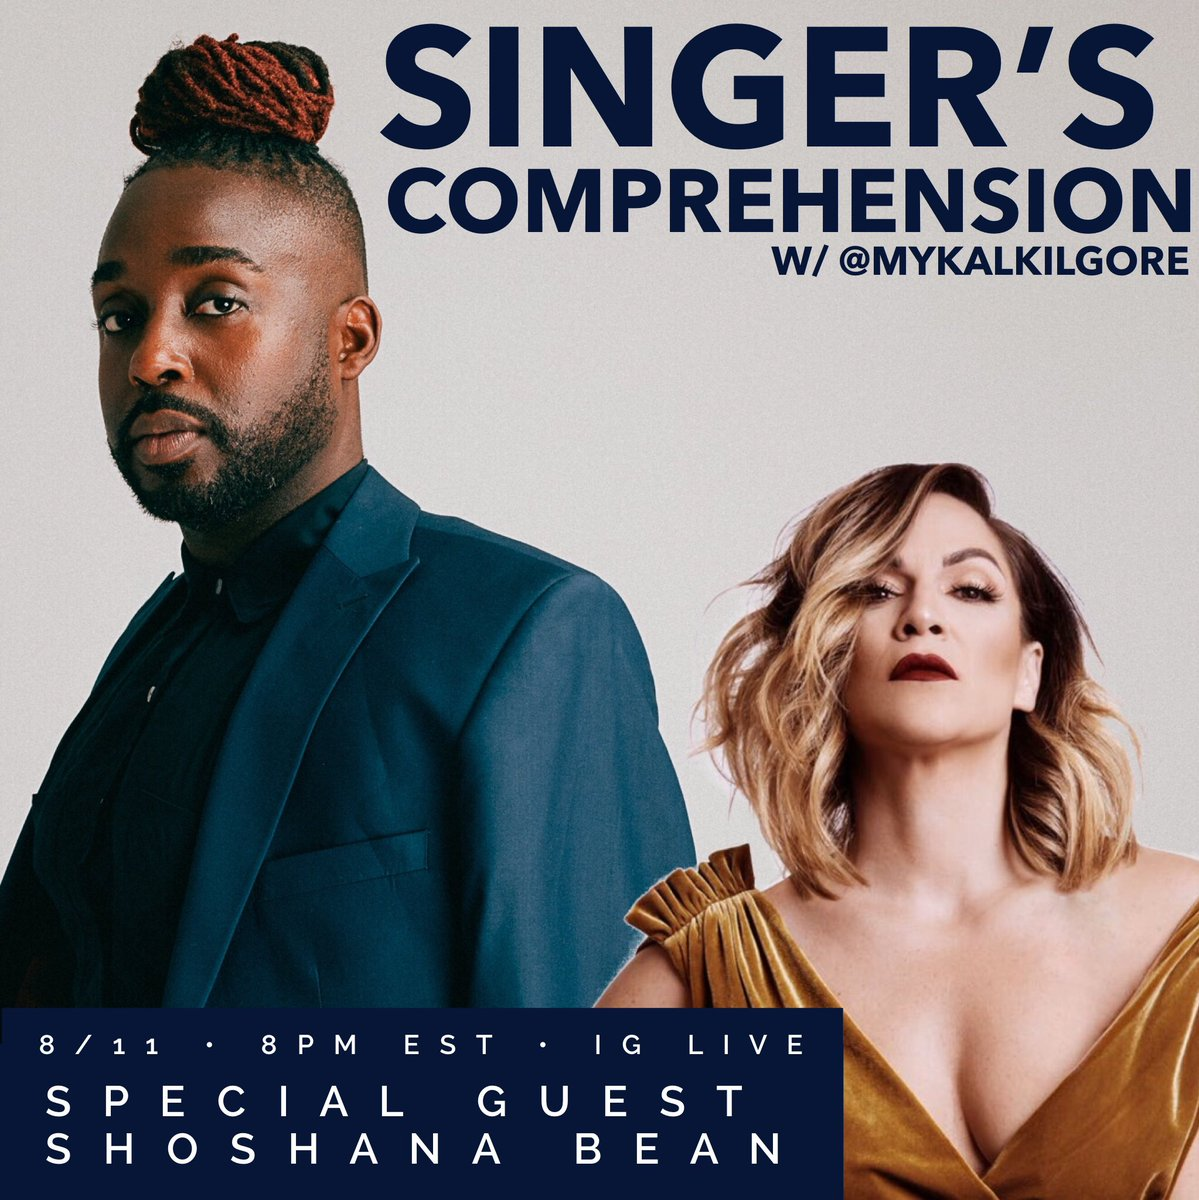 TONIGHT!!! #SingersComprehension w/ @mykalkilgore is gonna be goooooood! Tune into my IG Live at 8pm EST/7pm CST for my chat with my girl, @ShoshanaBean!  . #vocals #theatre #standards #shapeshifter #realmusiclives #thereisstillmusicpic.twitter.com/ETM8yVAGKi